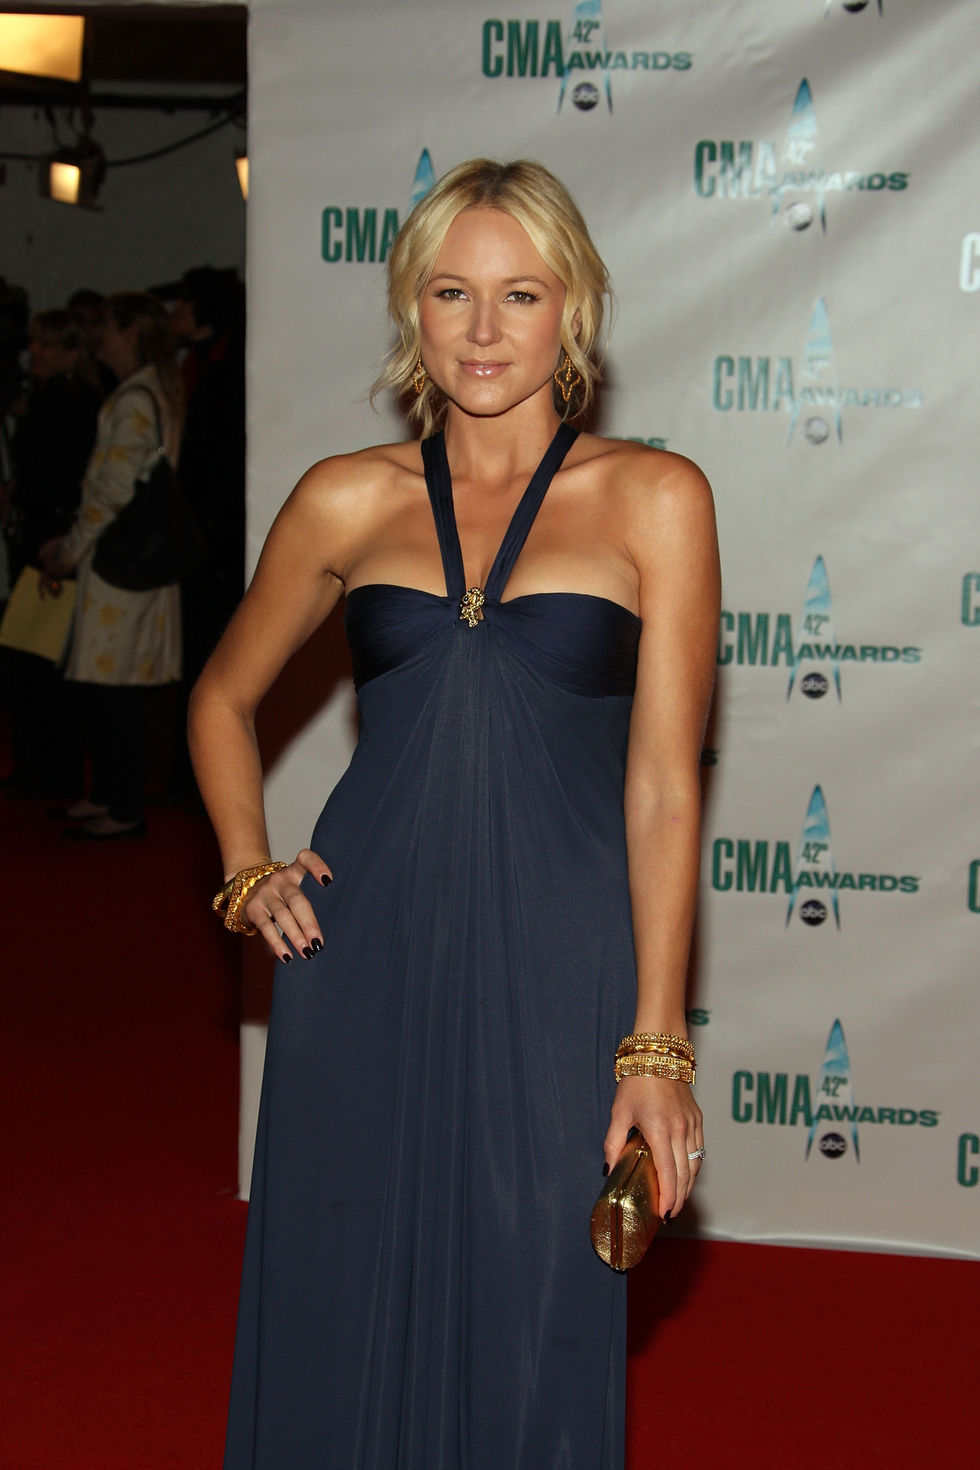 jewel-42nd-annual-cma-awards-in-nashville-01